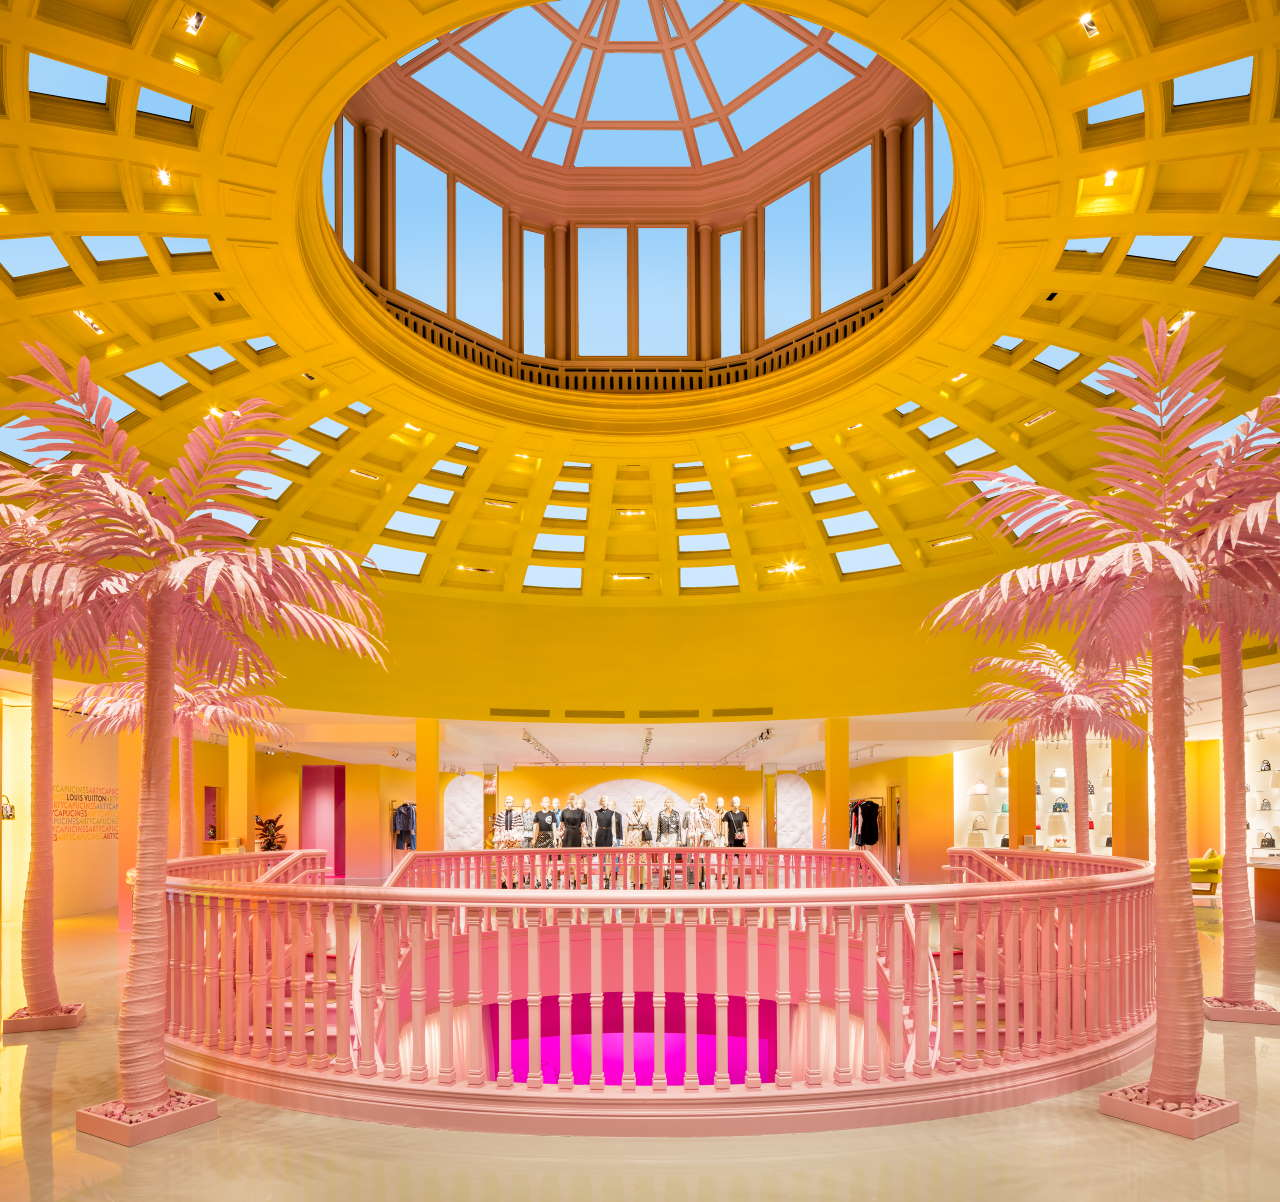 Pop-up store curated by Sarah Andelman. Photo by Brad Dickson, courtesy of Louis Vuitton.